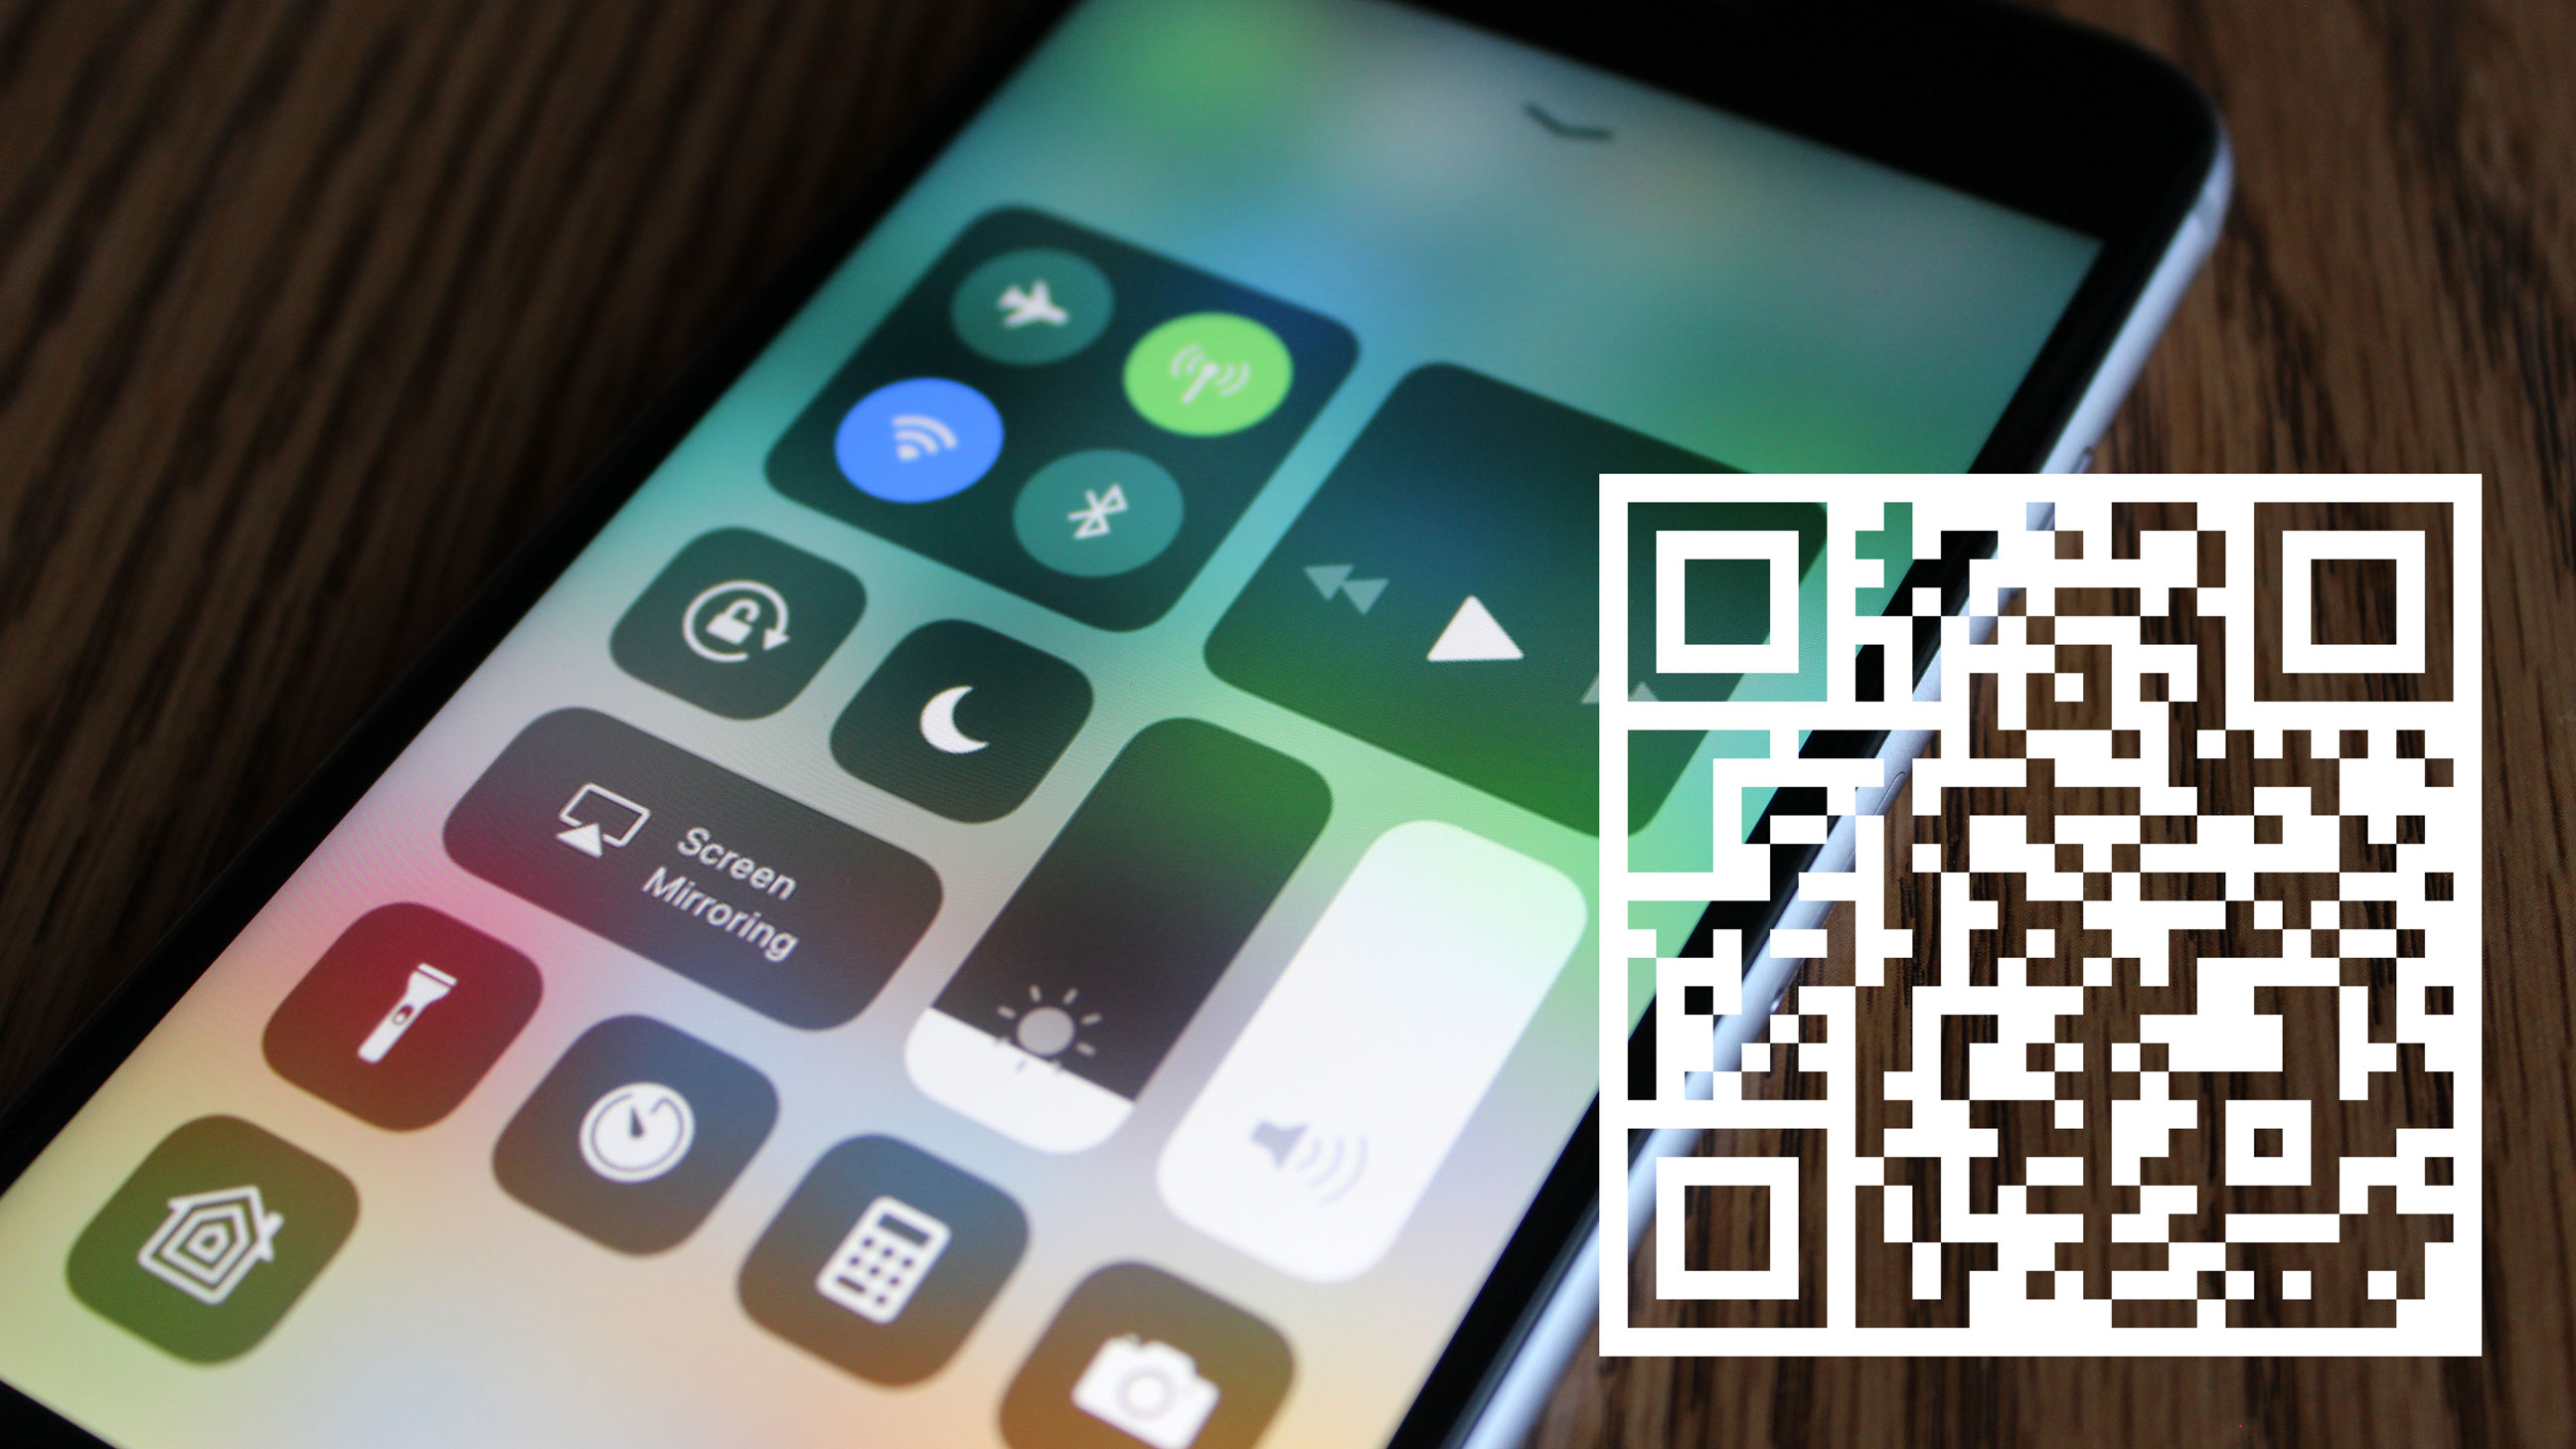 iOS 11 is a second chance for QR codes and NFC to hit it big